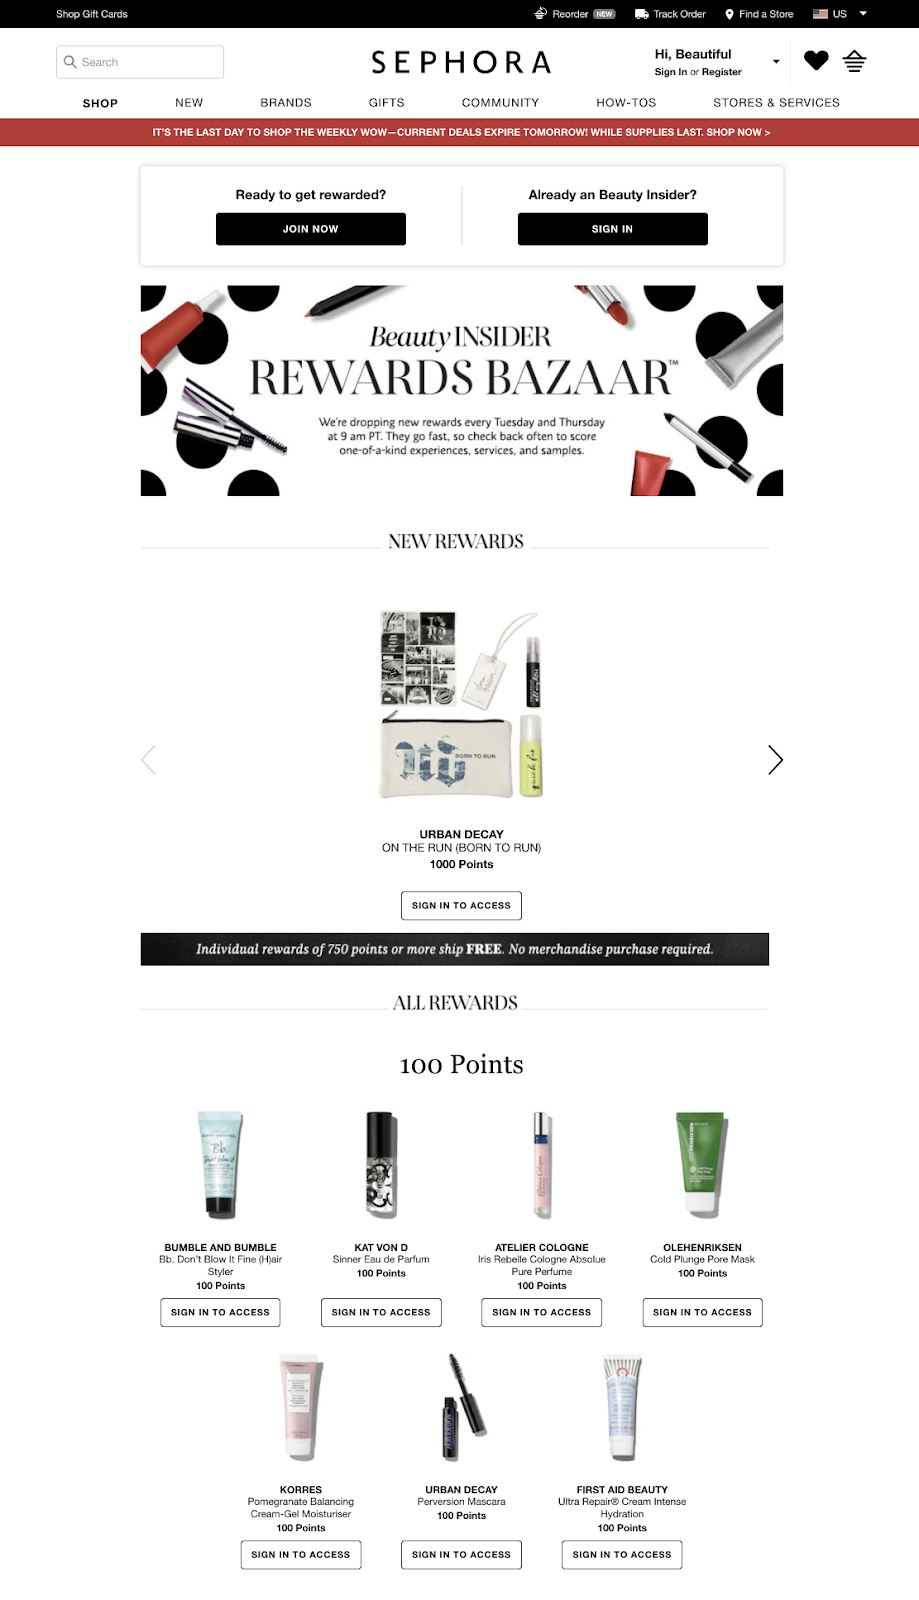 Screenshot showing a page on Sephora